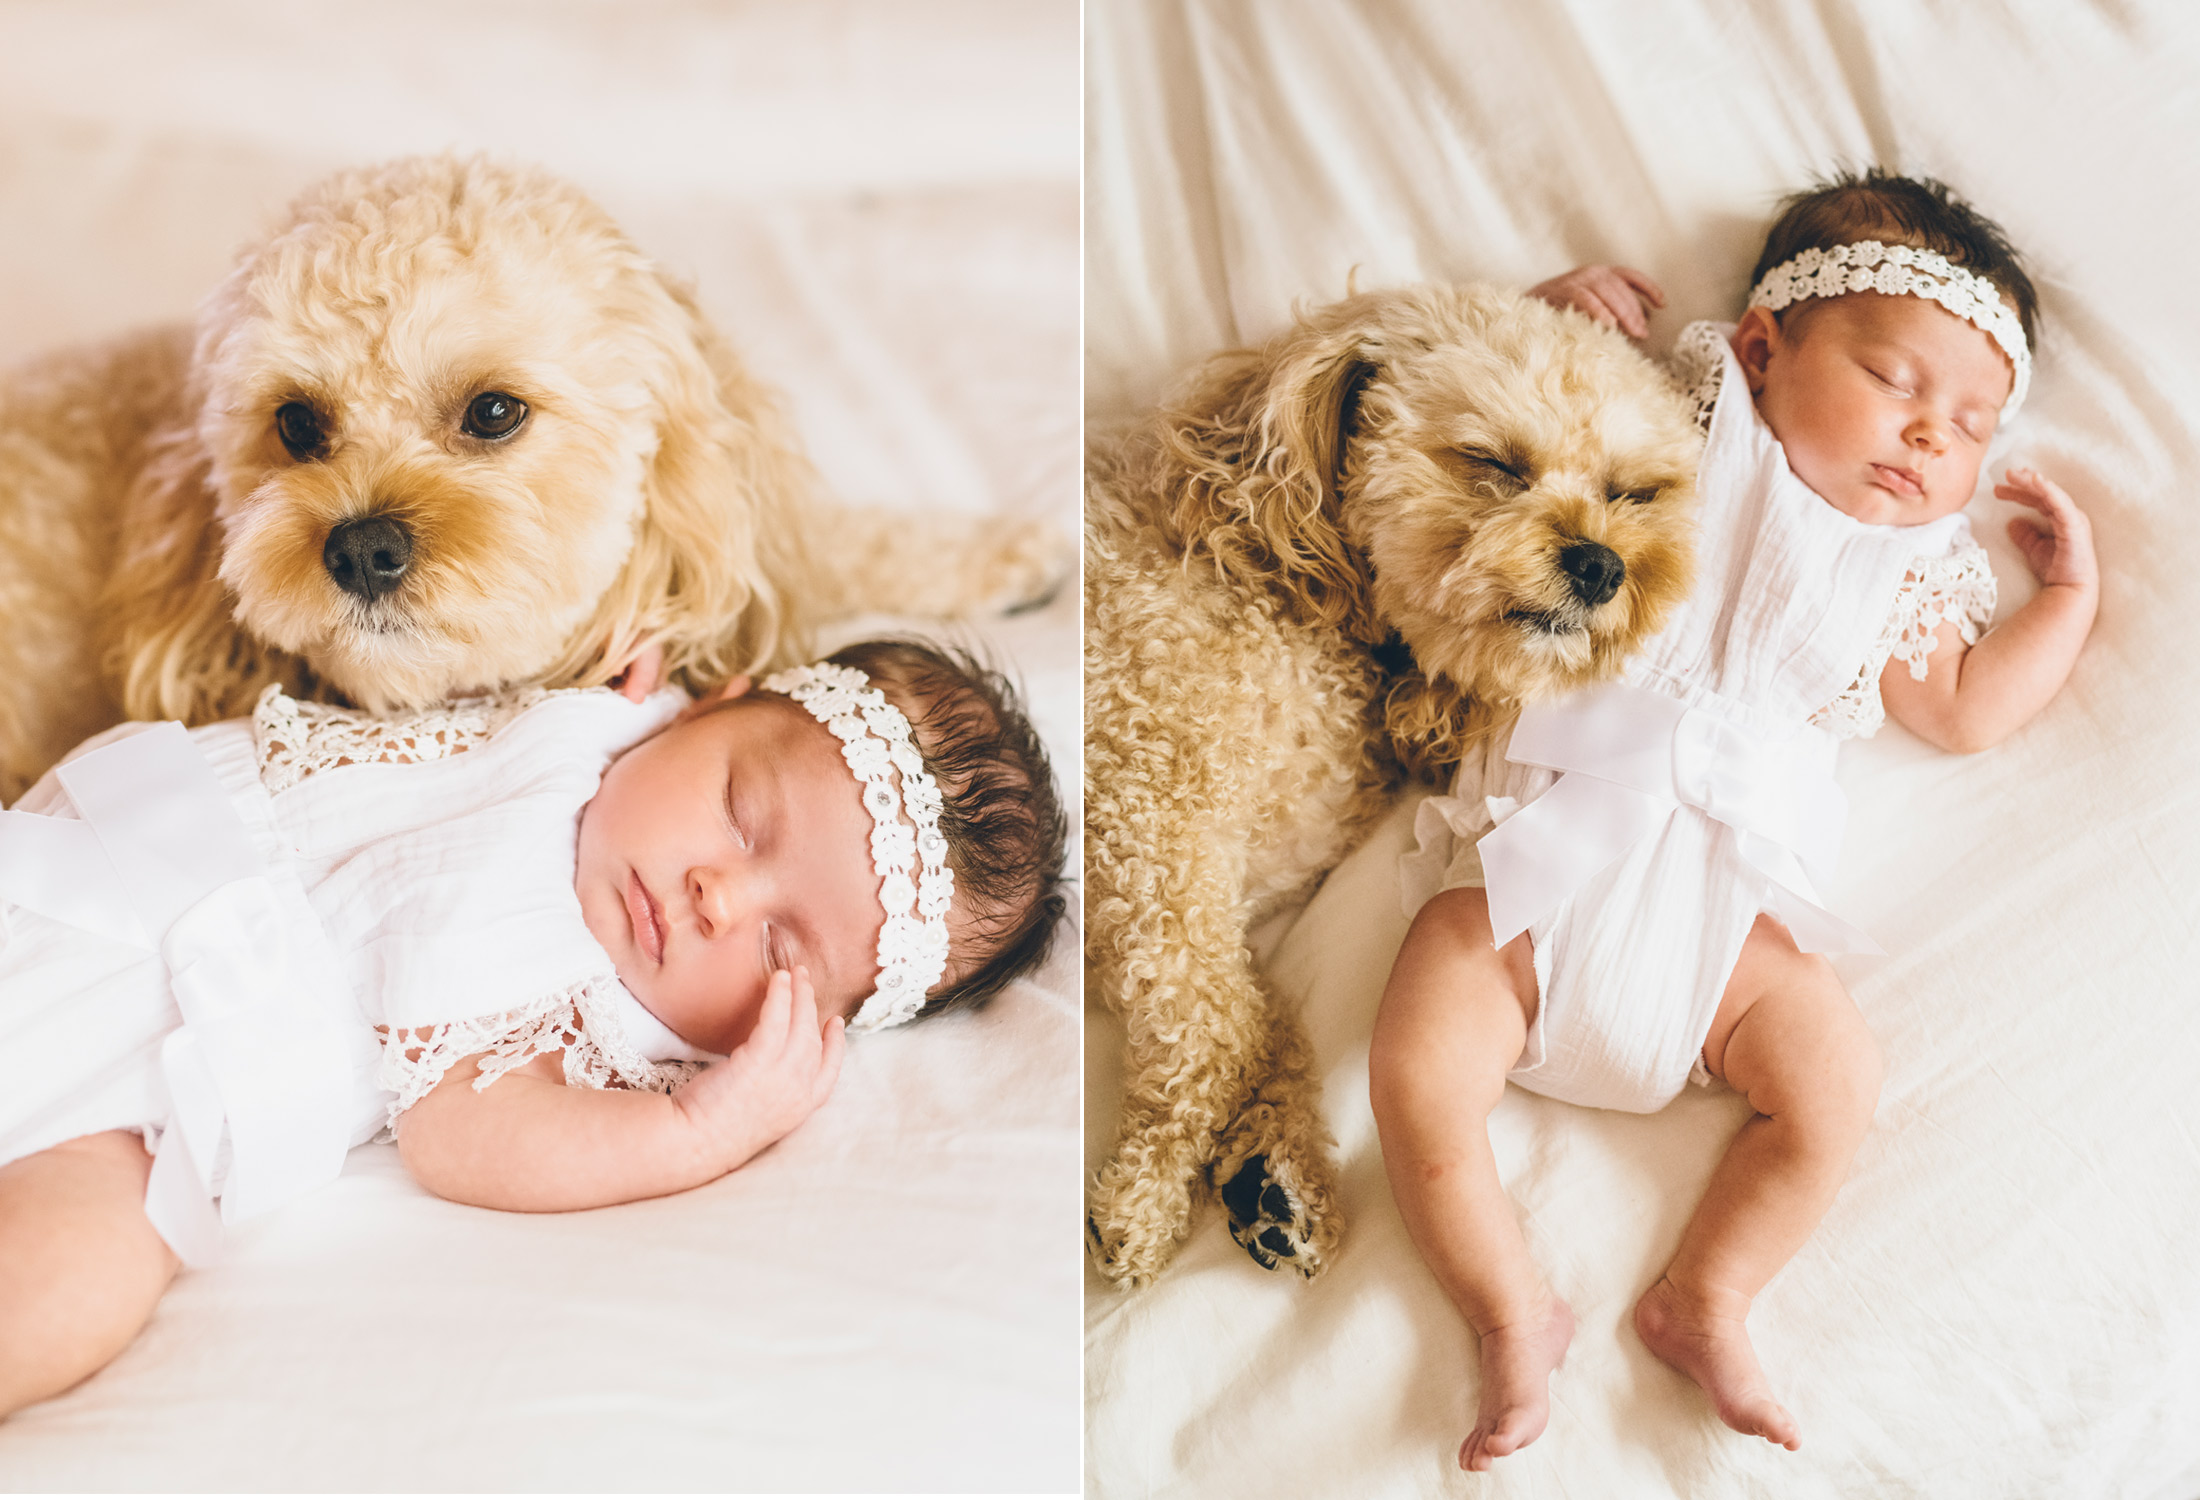 cavapoo-puppy-and-baby.jpg